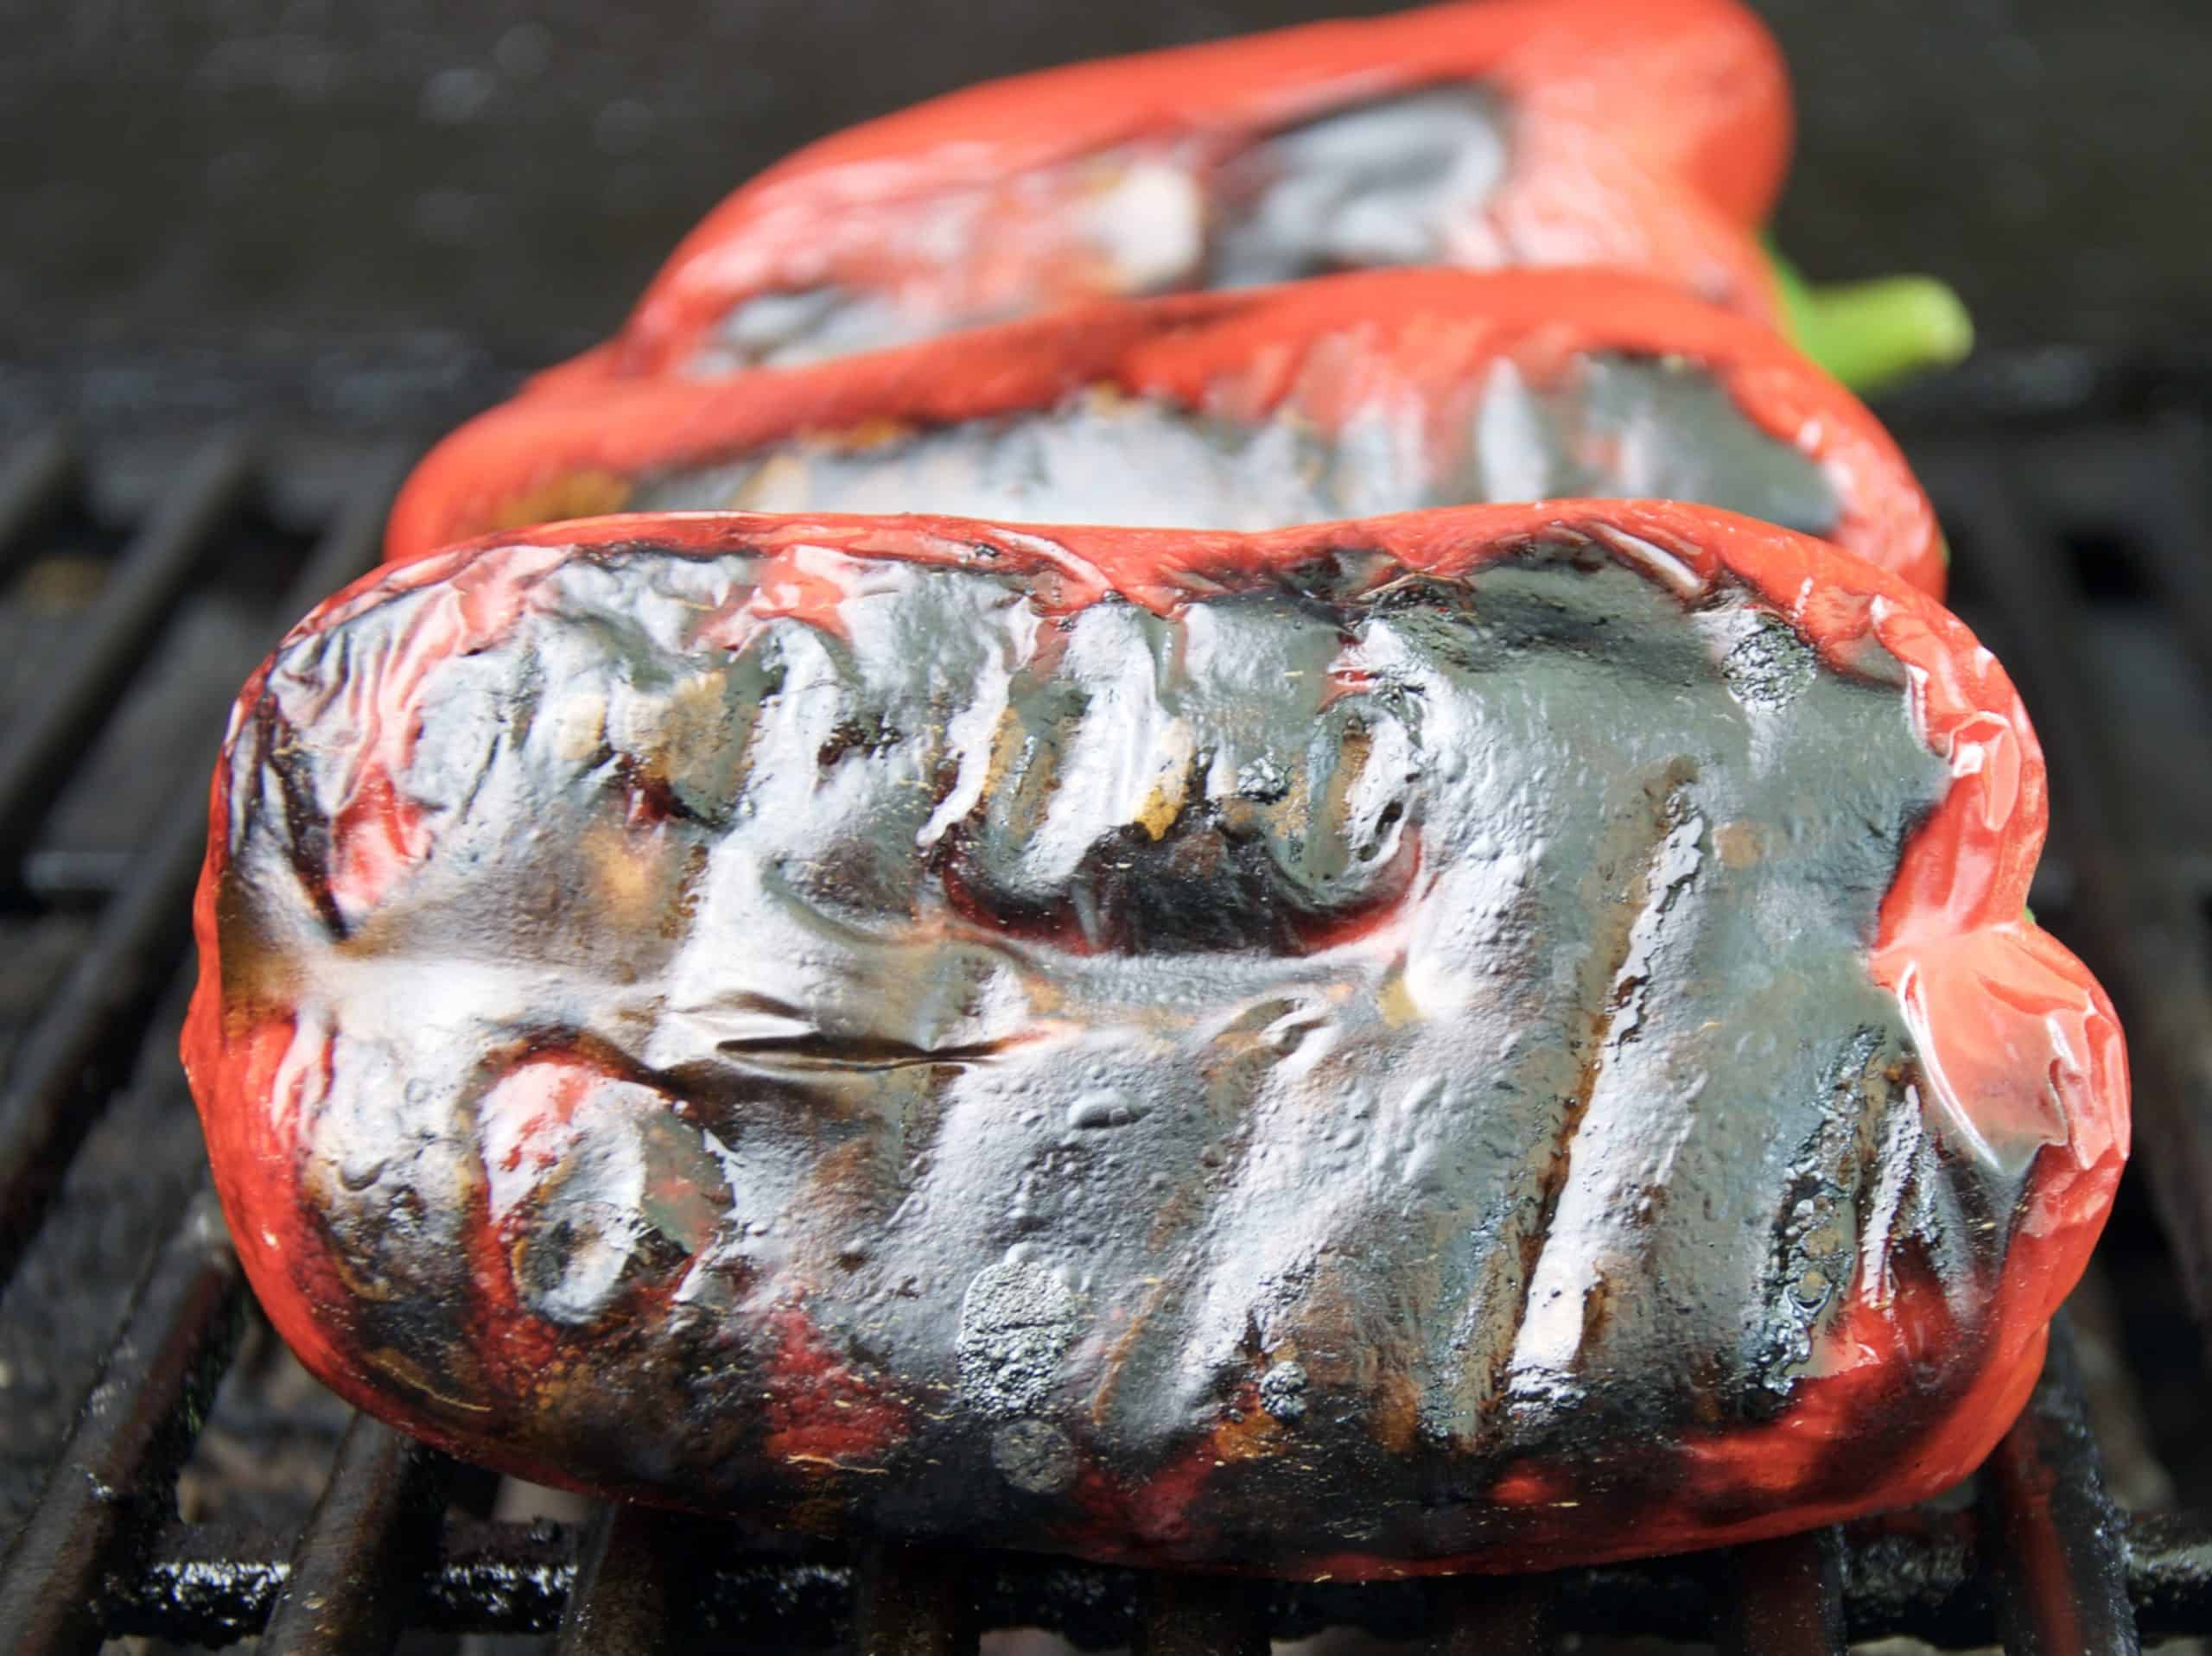 Chargrilled bell peppers on chargrill showing black skin